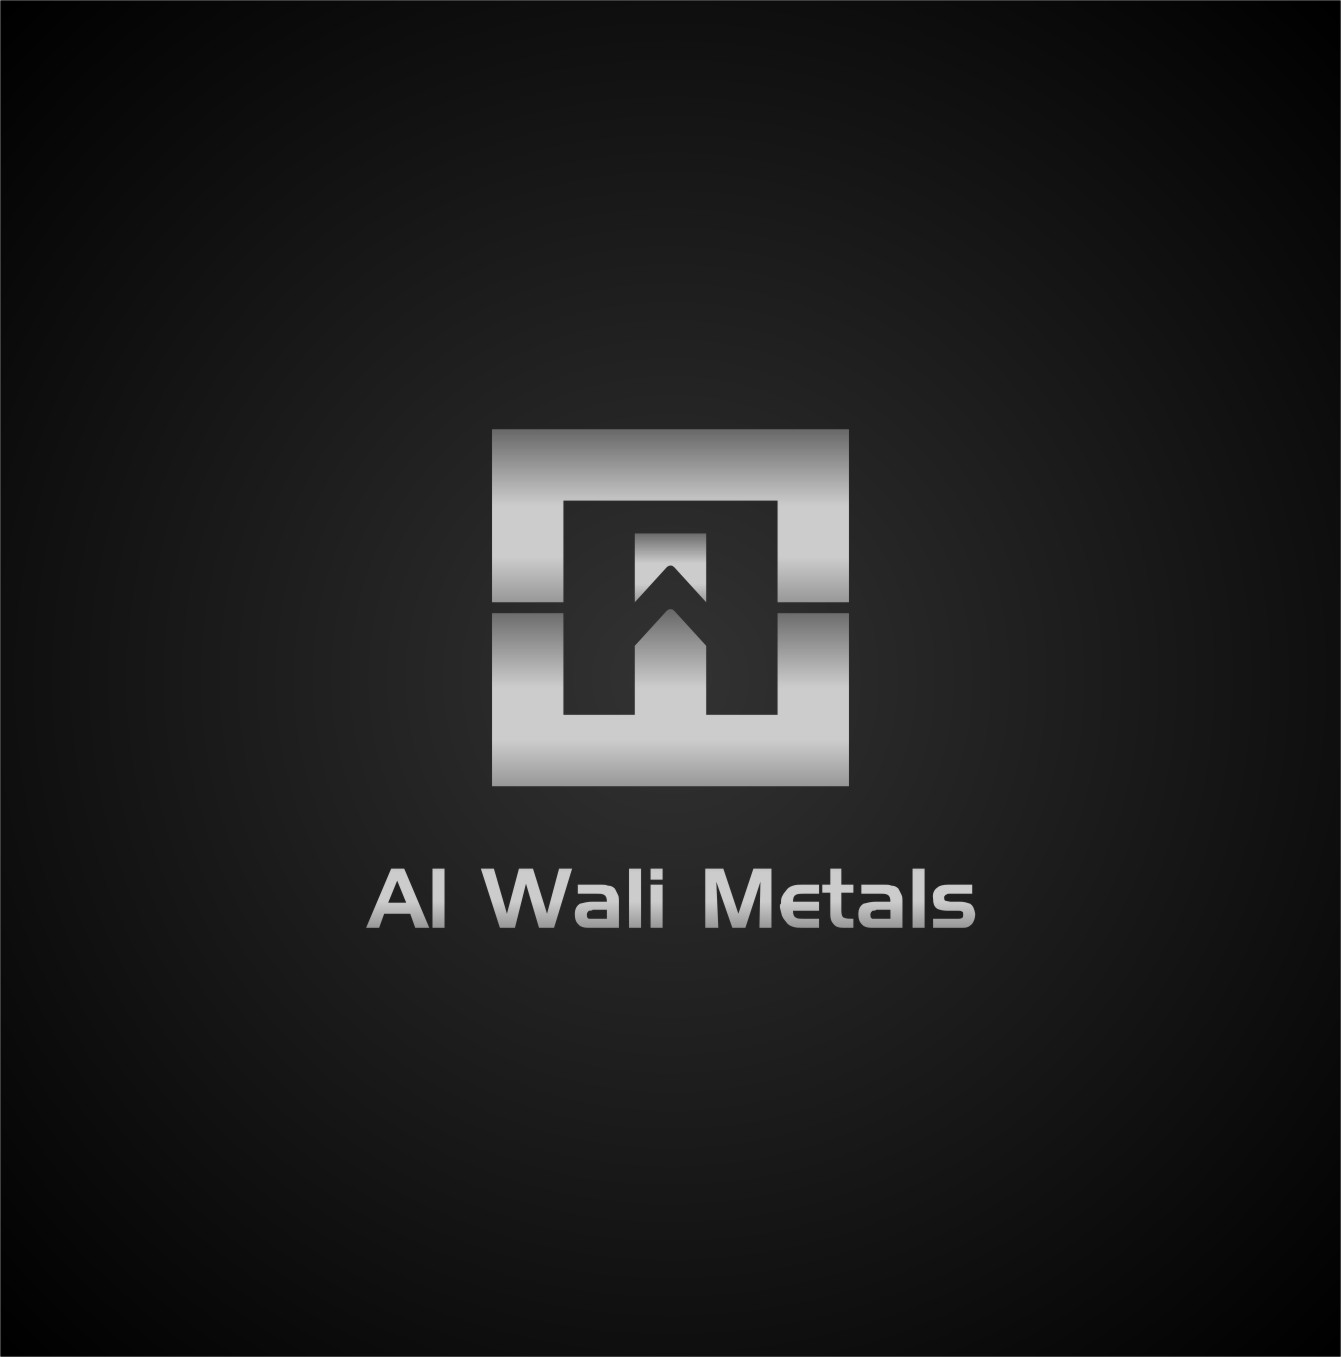 Logo Design by RasYa Muhammad Athaya - Entry No. 143 in the Logo Design Contest Inspiring Logo Design for Al Wali Metals.